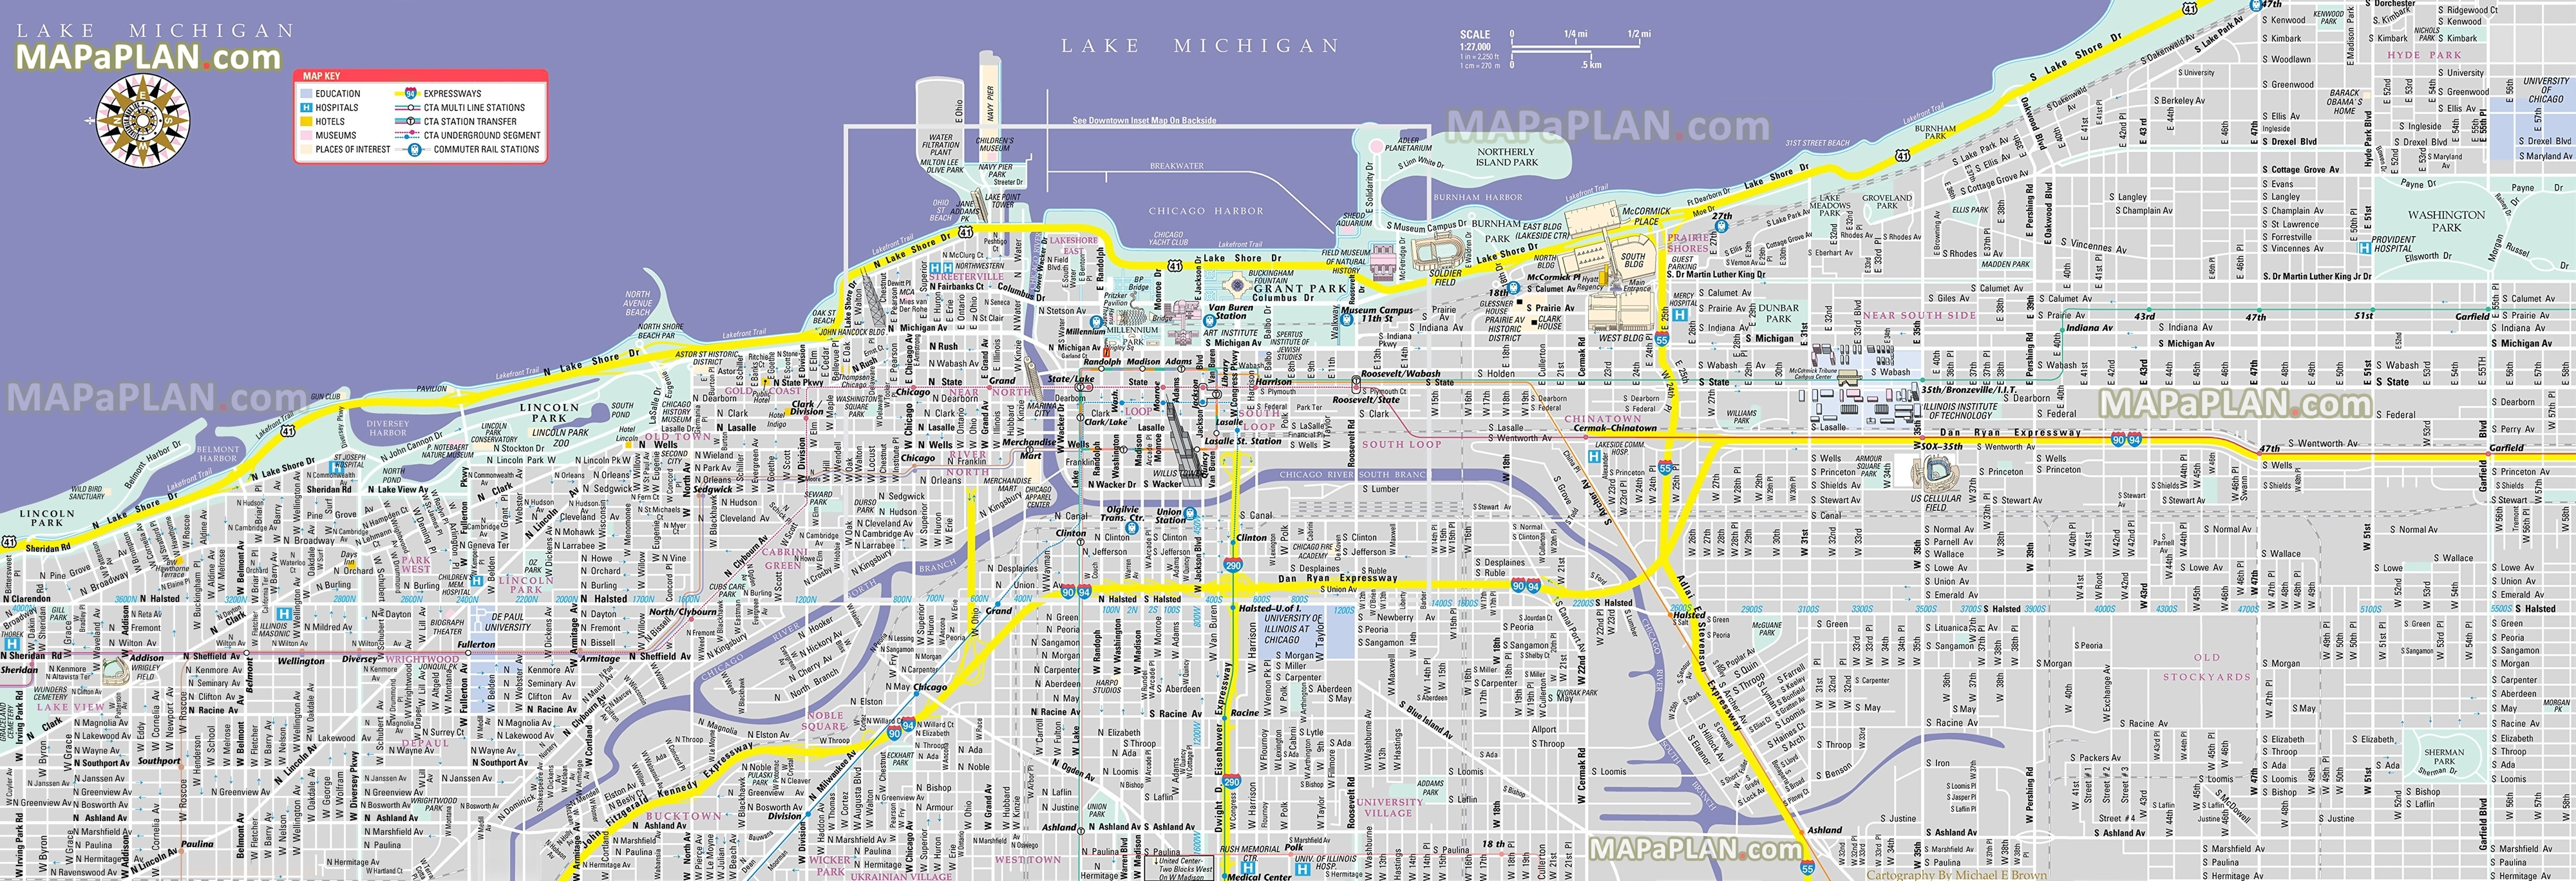 Downtown Chicago Tourist Attractions Chicago Maps Top Tourist - Printable Map Of Downtown Chicago